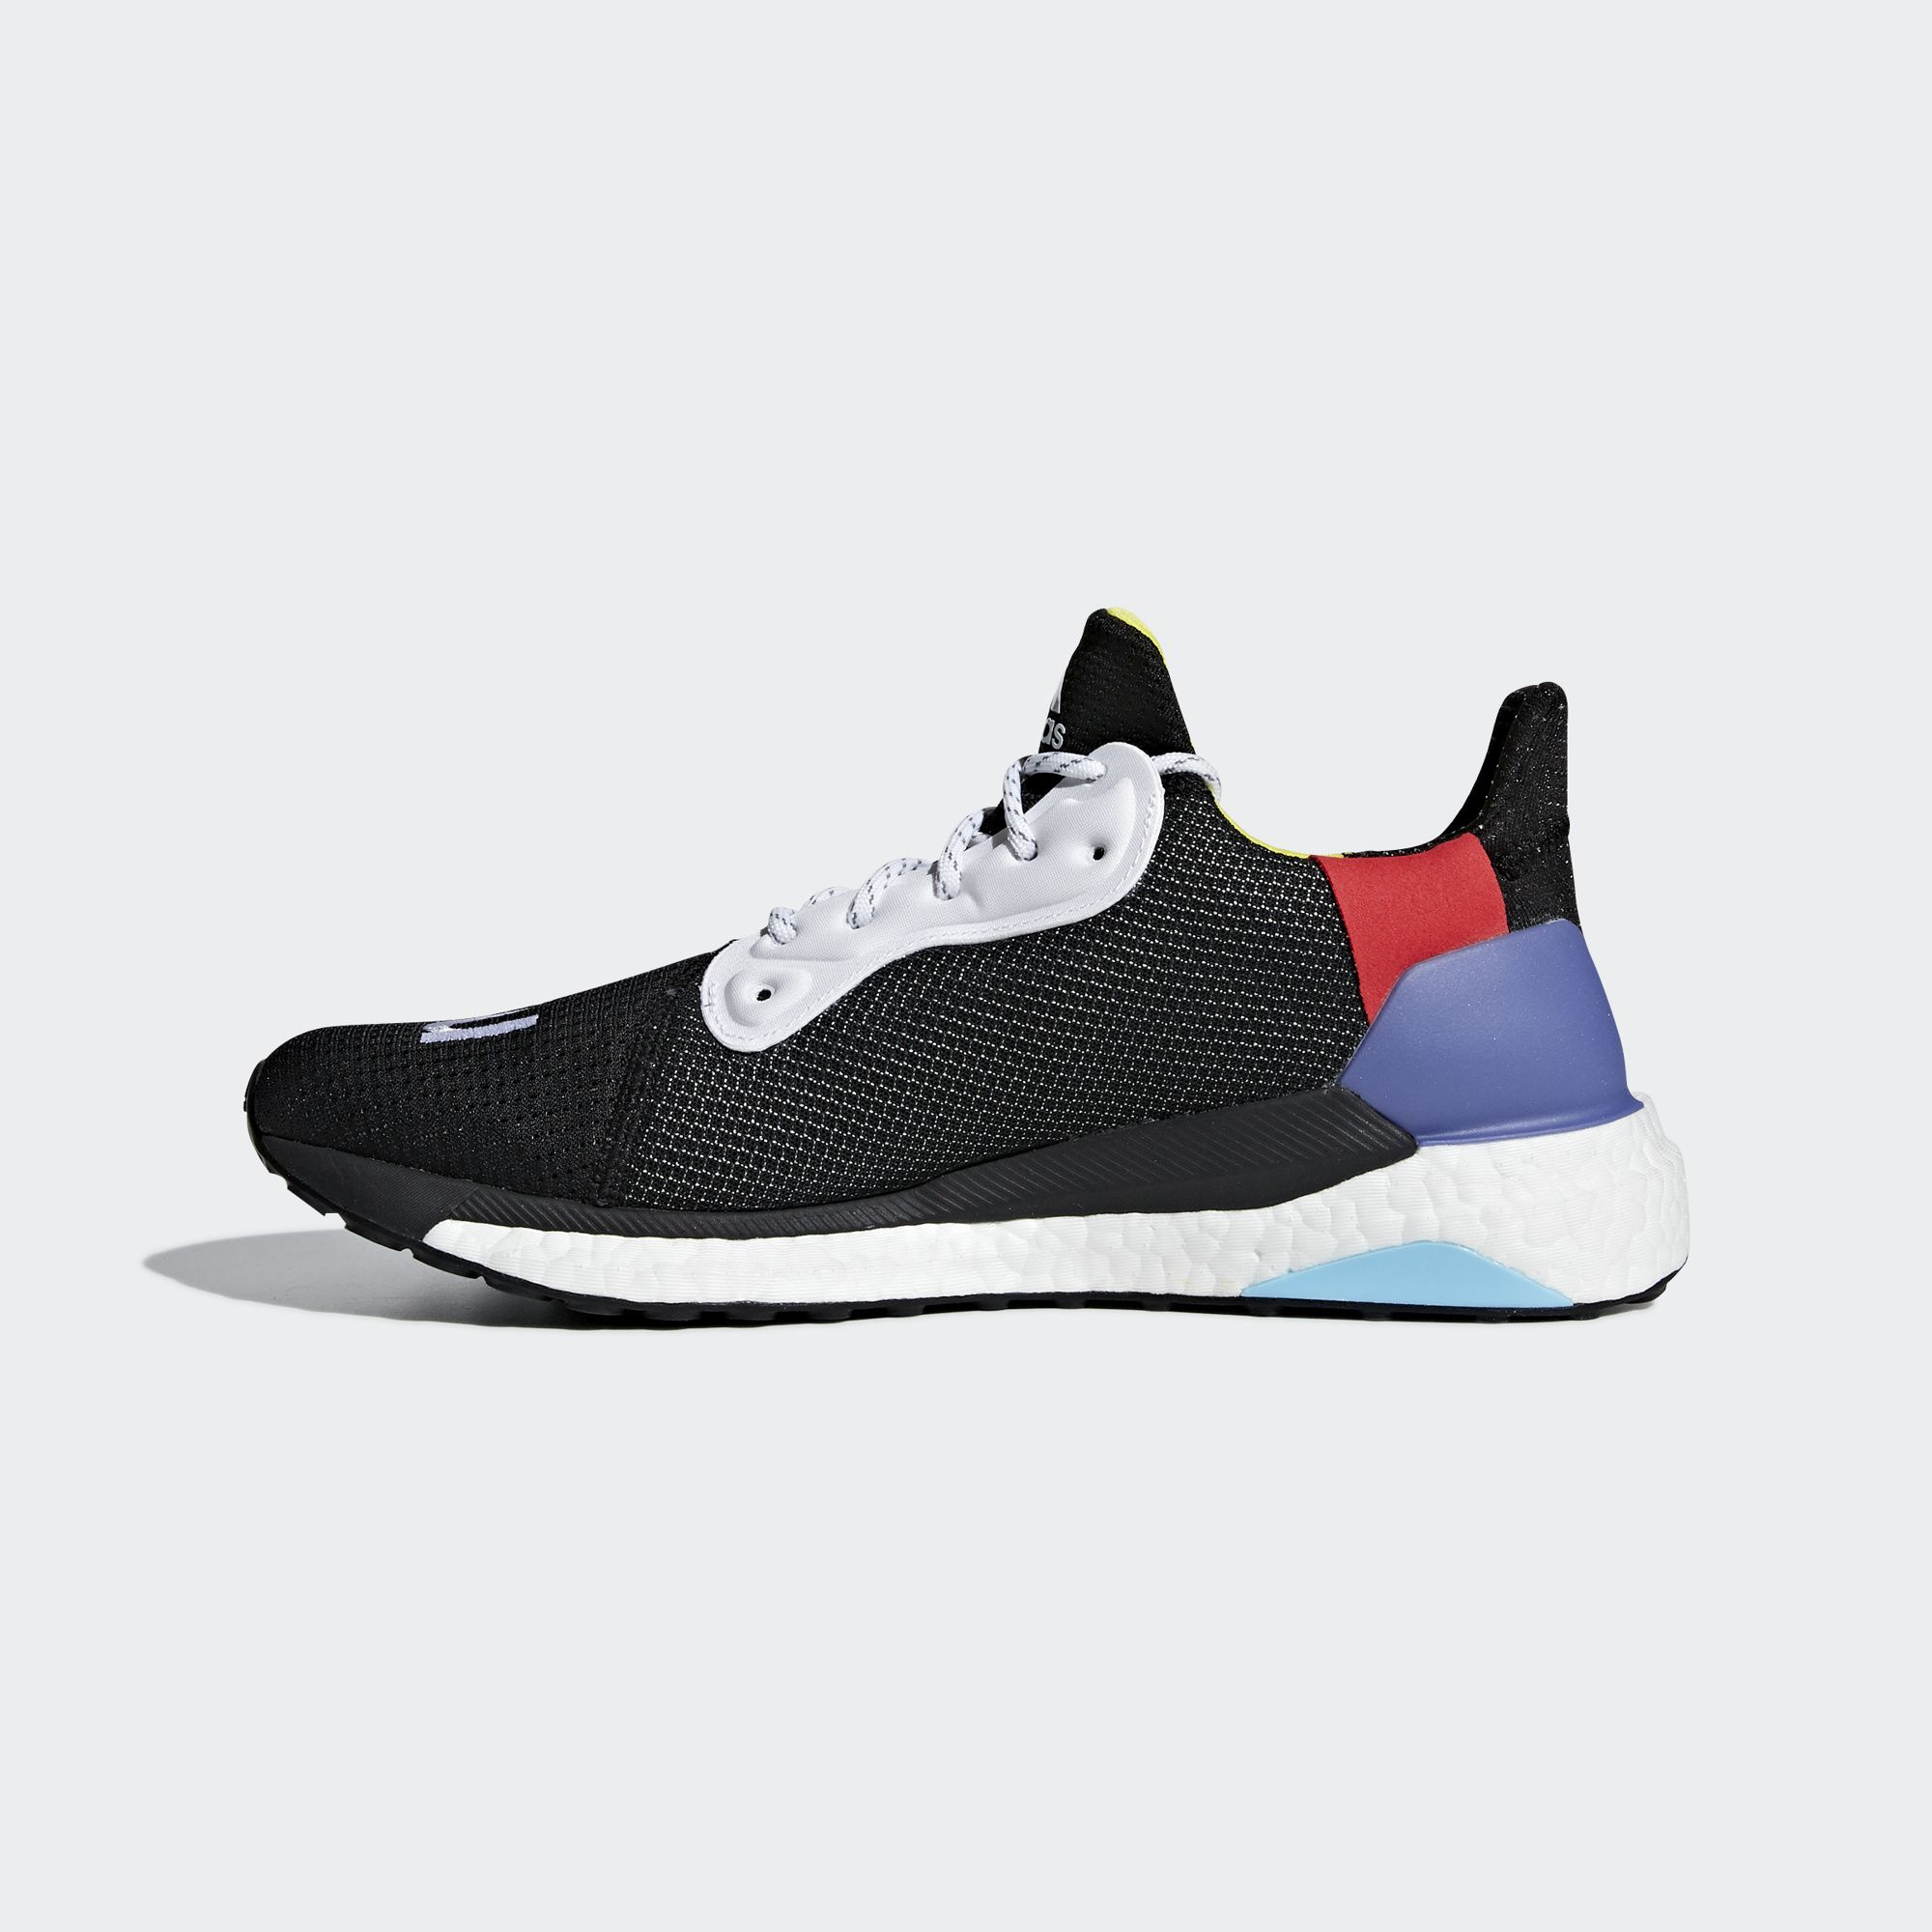 05-adidas-pharrell-williams-hu-solar-glide-00-black-bb8041